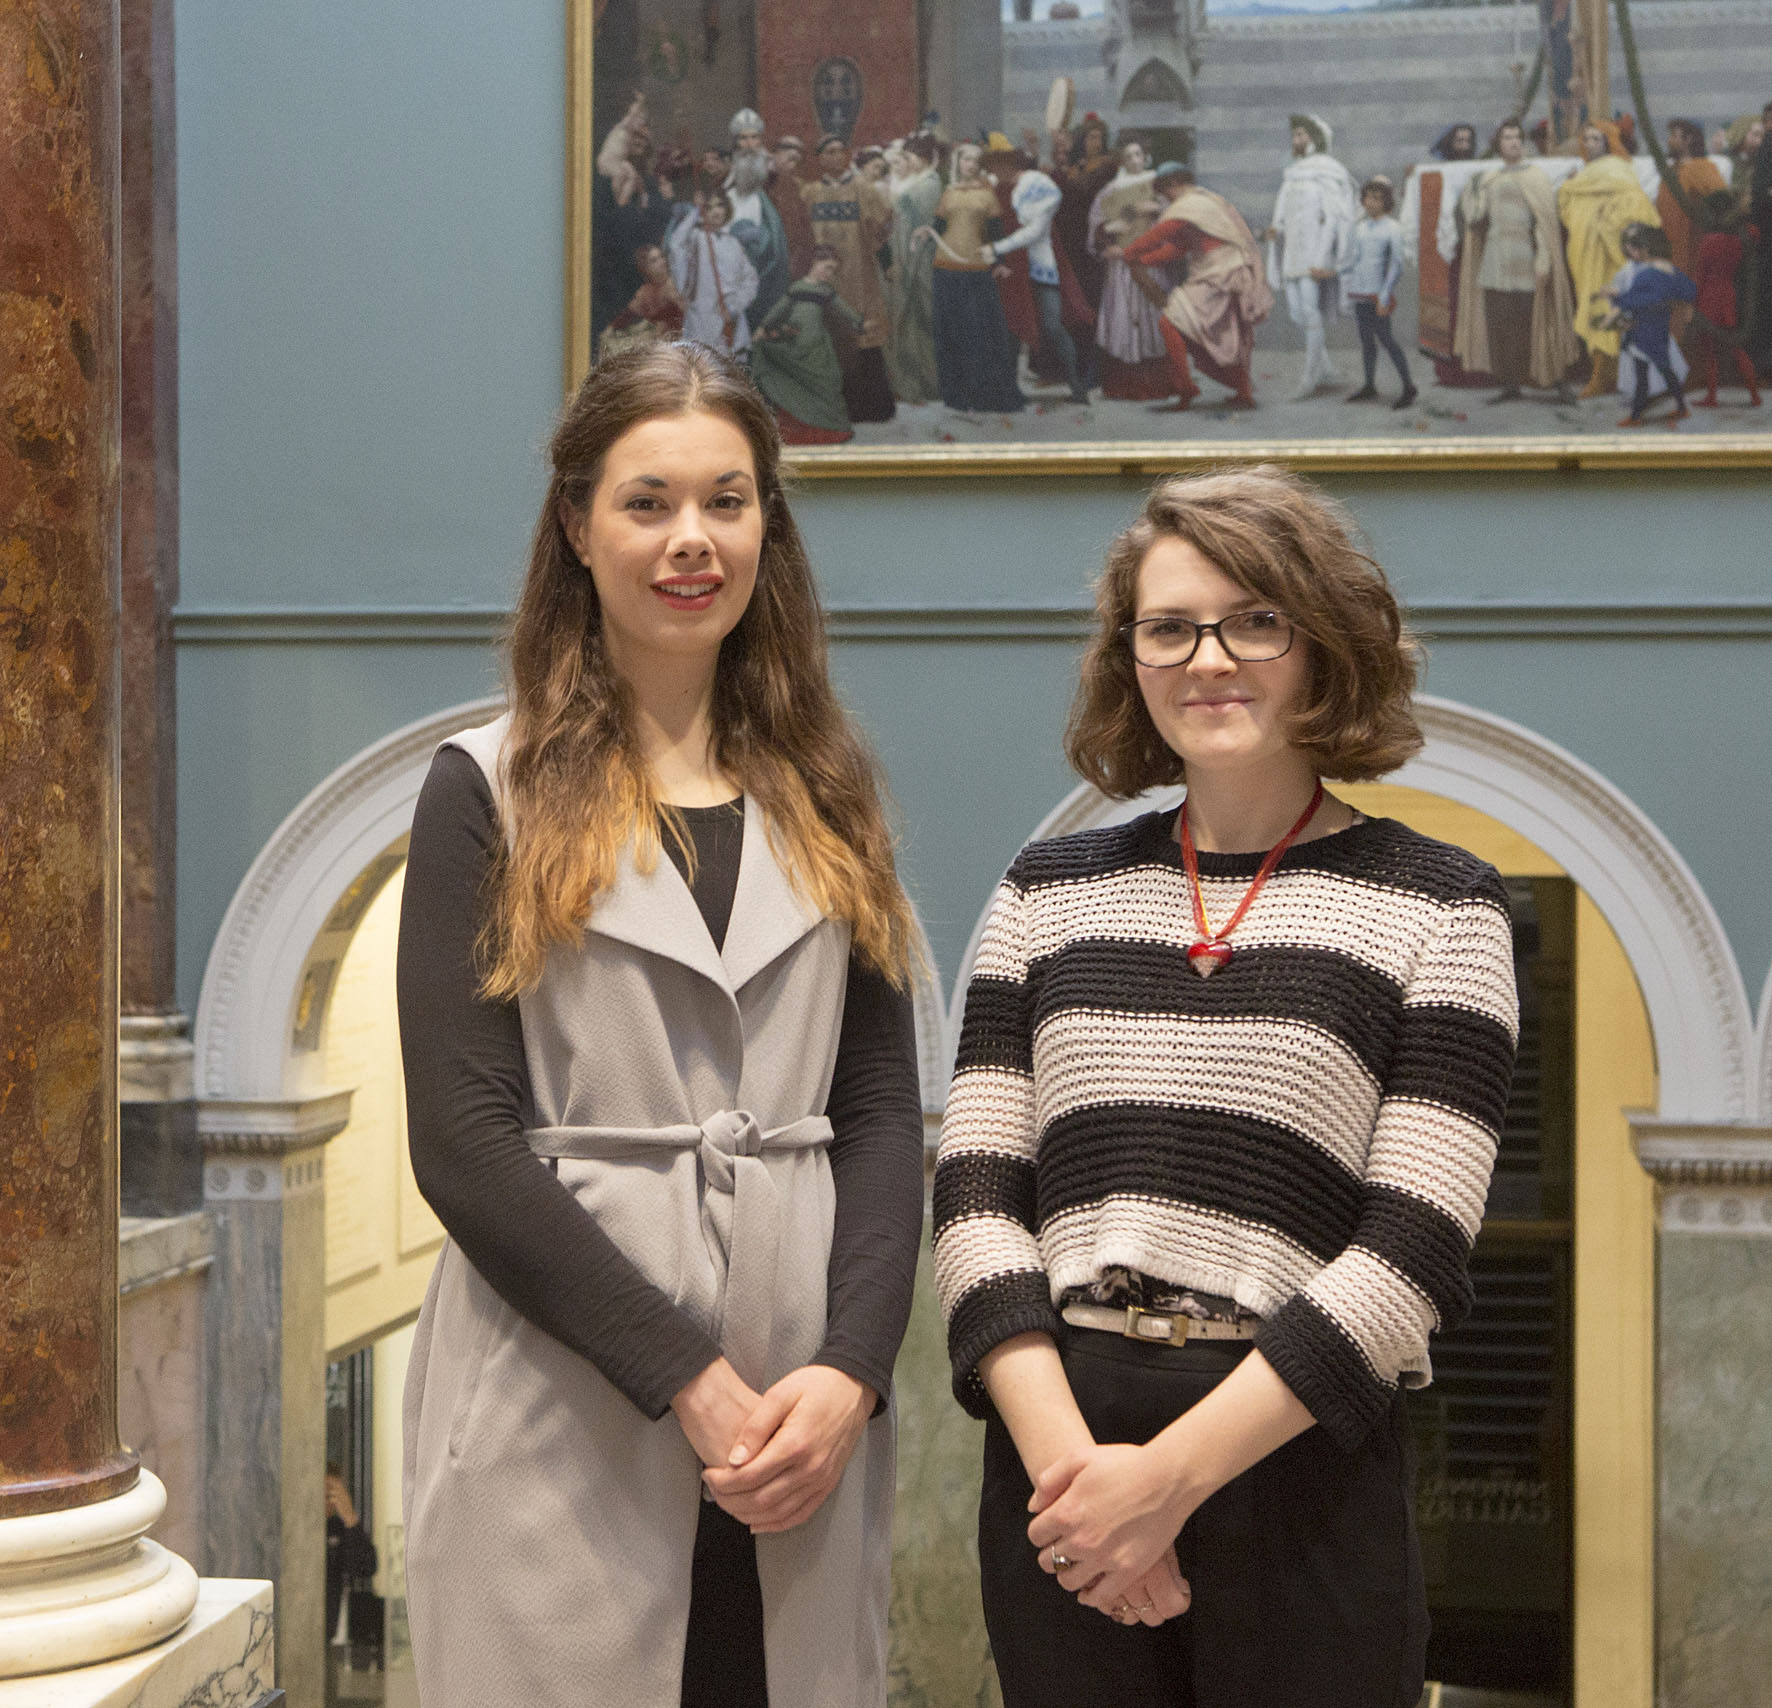 Our current National Gallery Curatorial Trainees, Lucy West and Sylvie Broussine